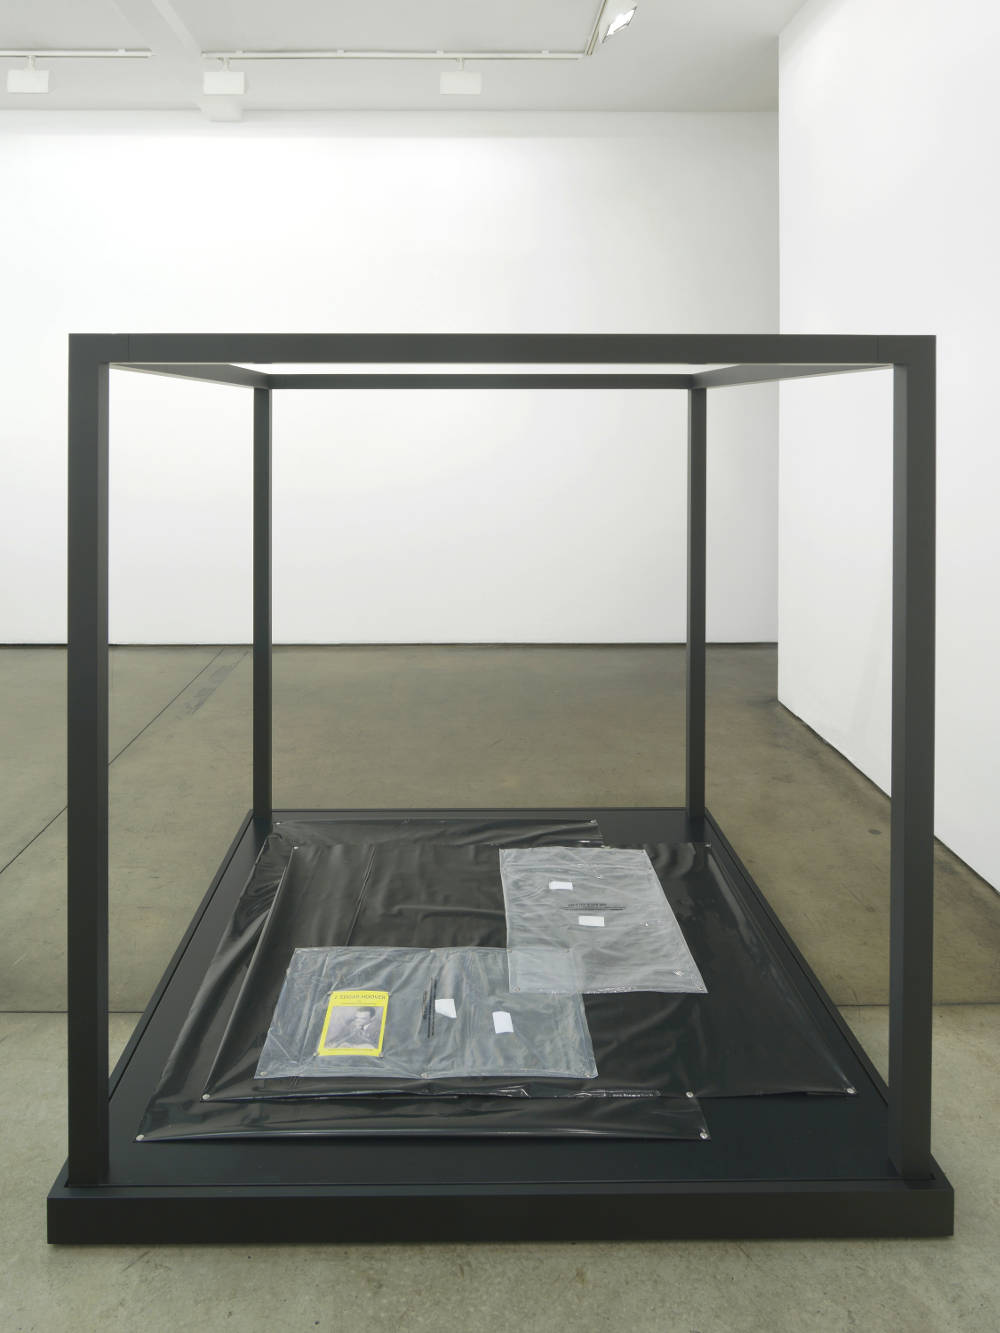 Tom Burr, Federal Asphyxiation, 2017. Black plastic sheeting, clear plastic bags, steel push pins, paperback copy of 'J. Edgar Hoover on Juvenile Delinquency: with Commentary by Michael Scott' (1946), powder coated aluminium, painted plywood 154 x 150 x 150 cm